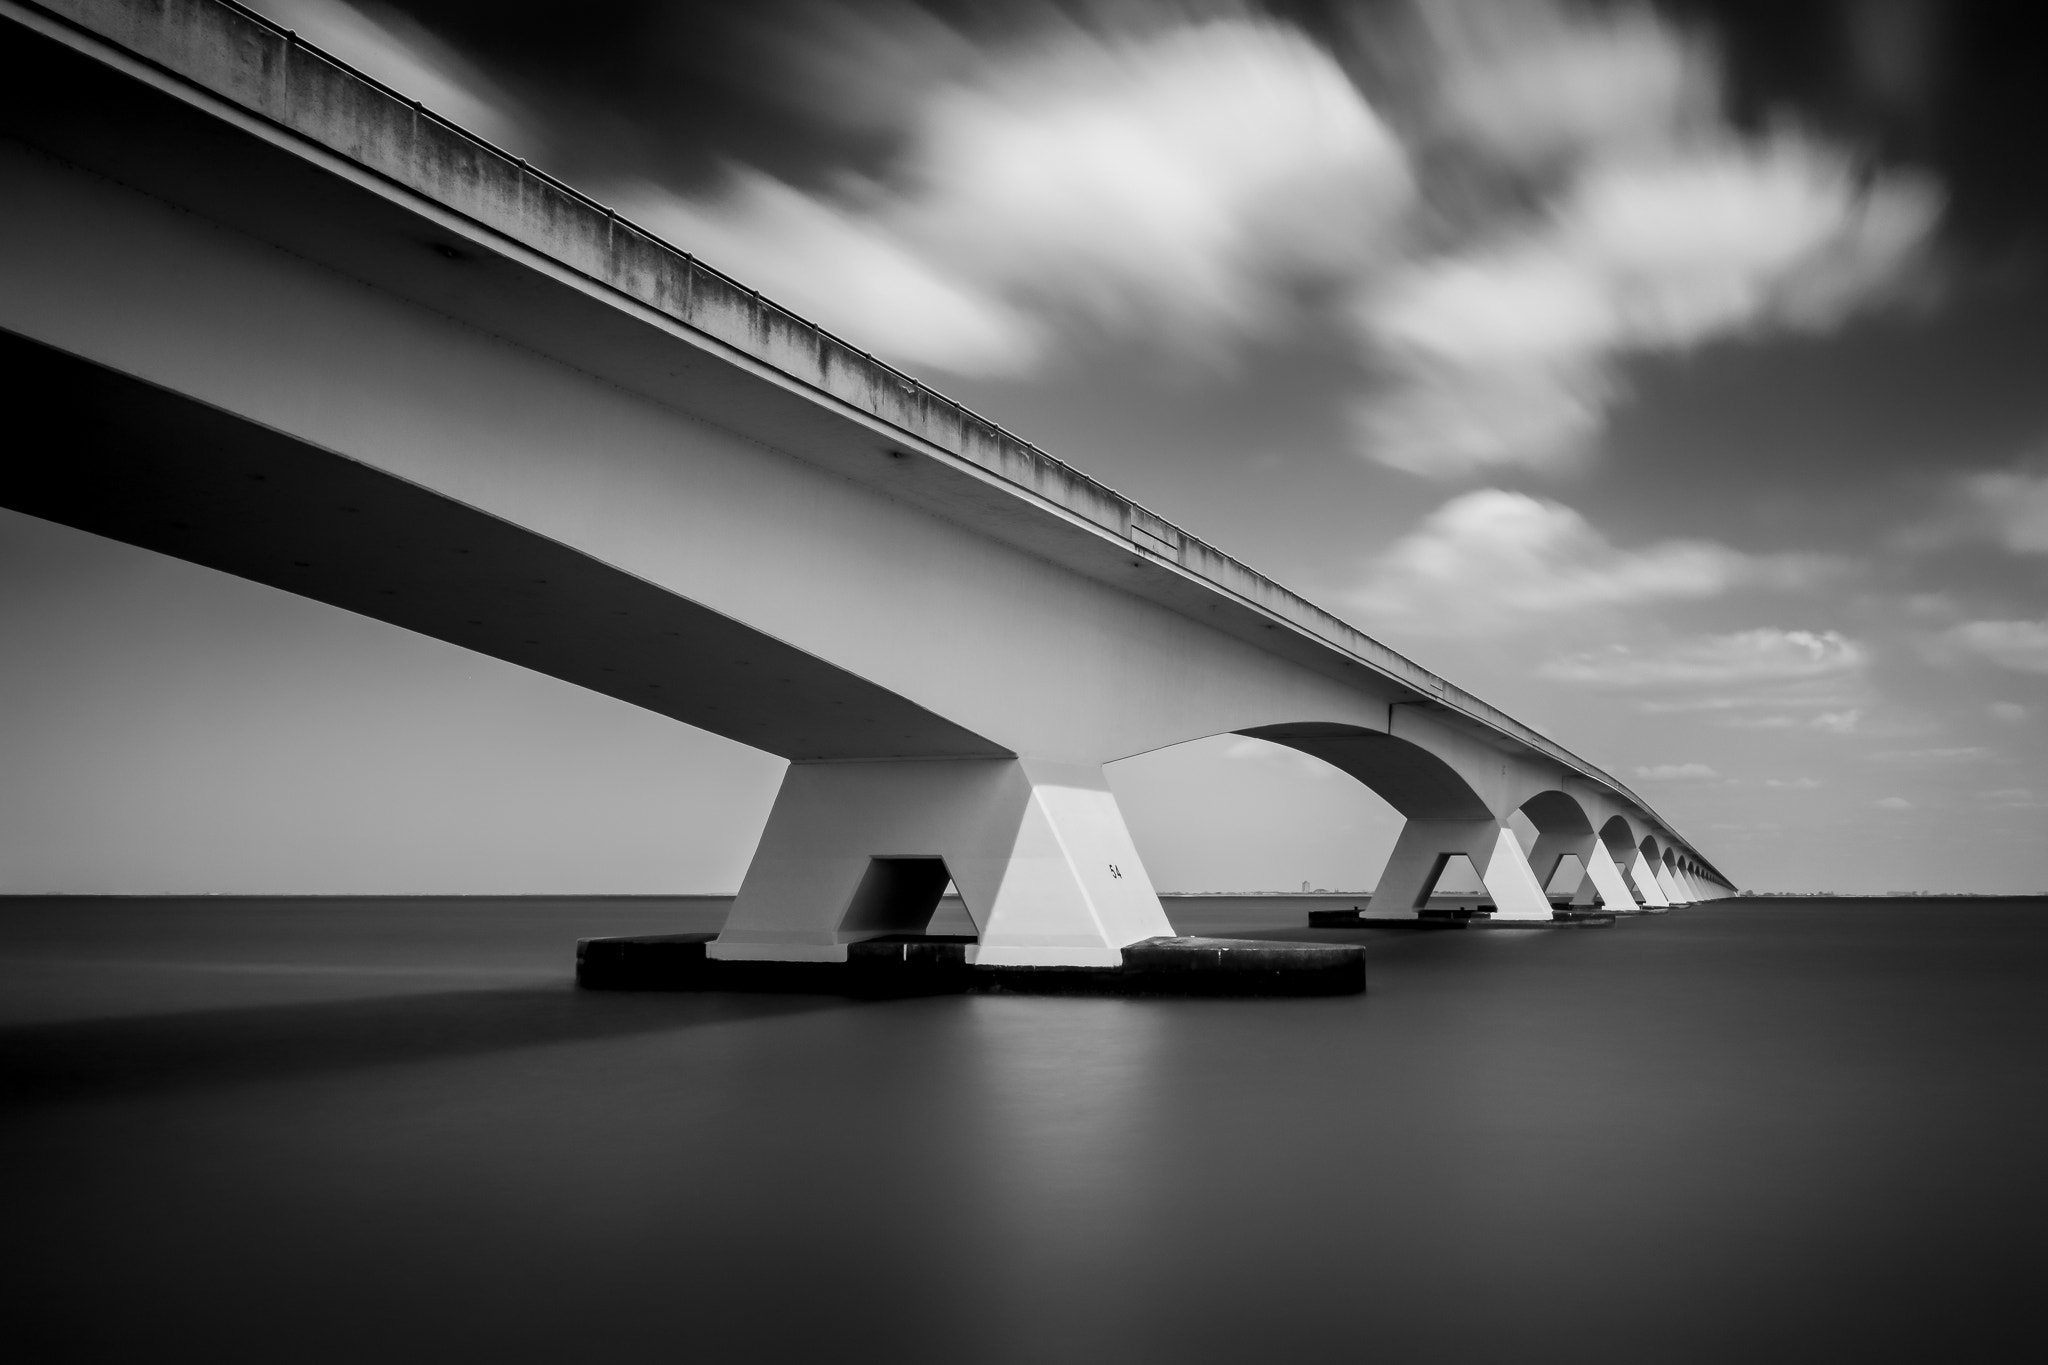 Photograph The Bridge by Raymond van der Hoogt on 500px